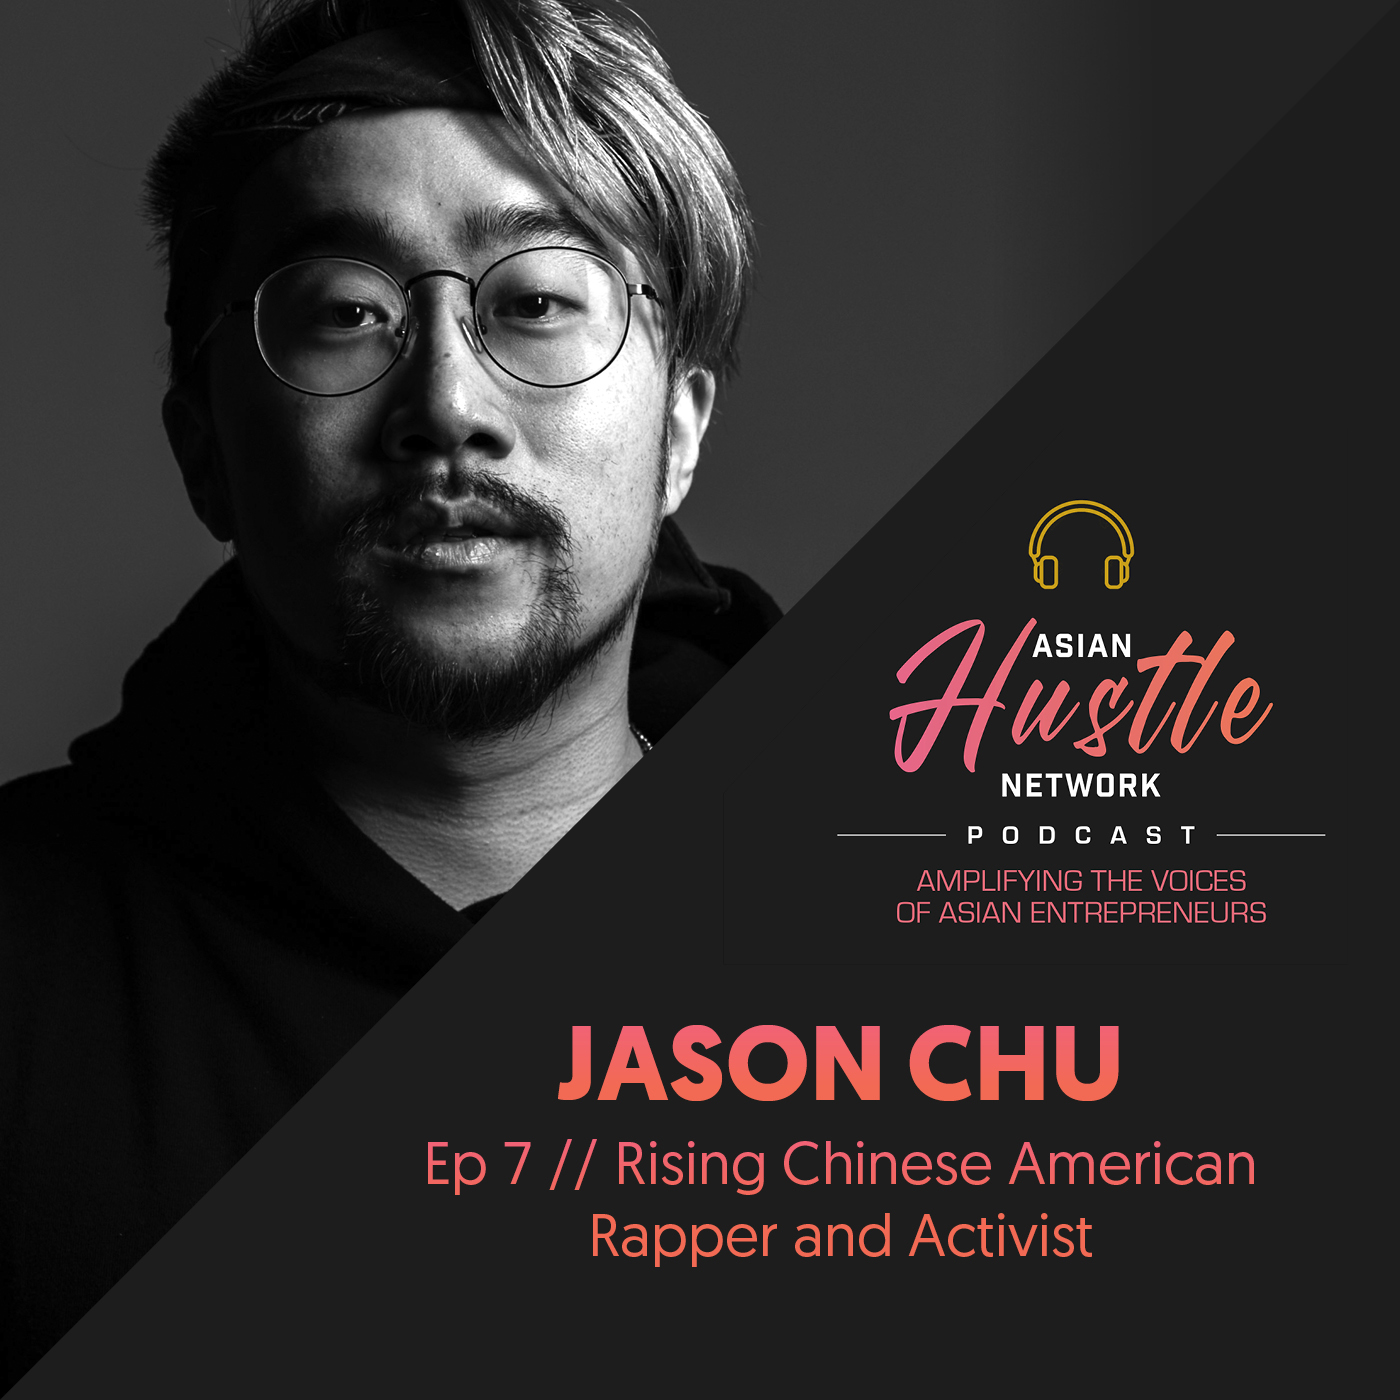 www.asianhustlenetwork.com: Jason Chu // Ep 7 // Rising Chinese American Rapper and Activist